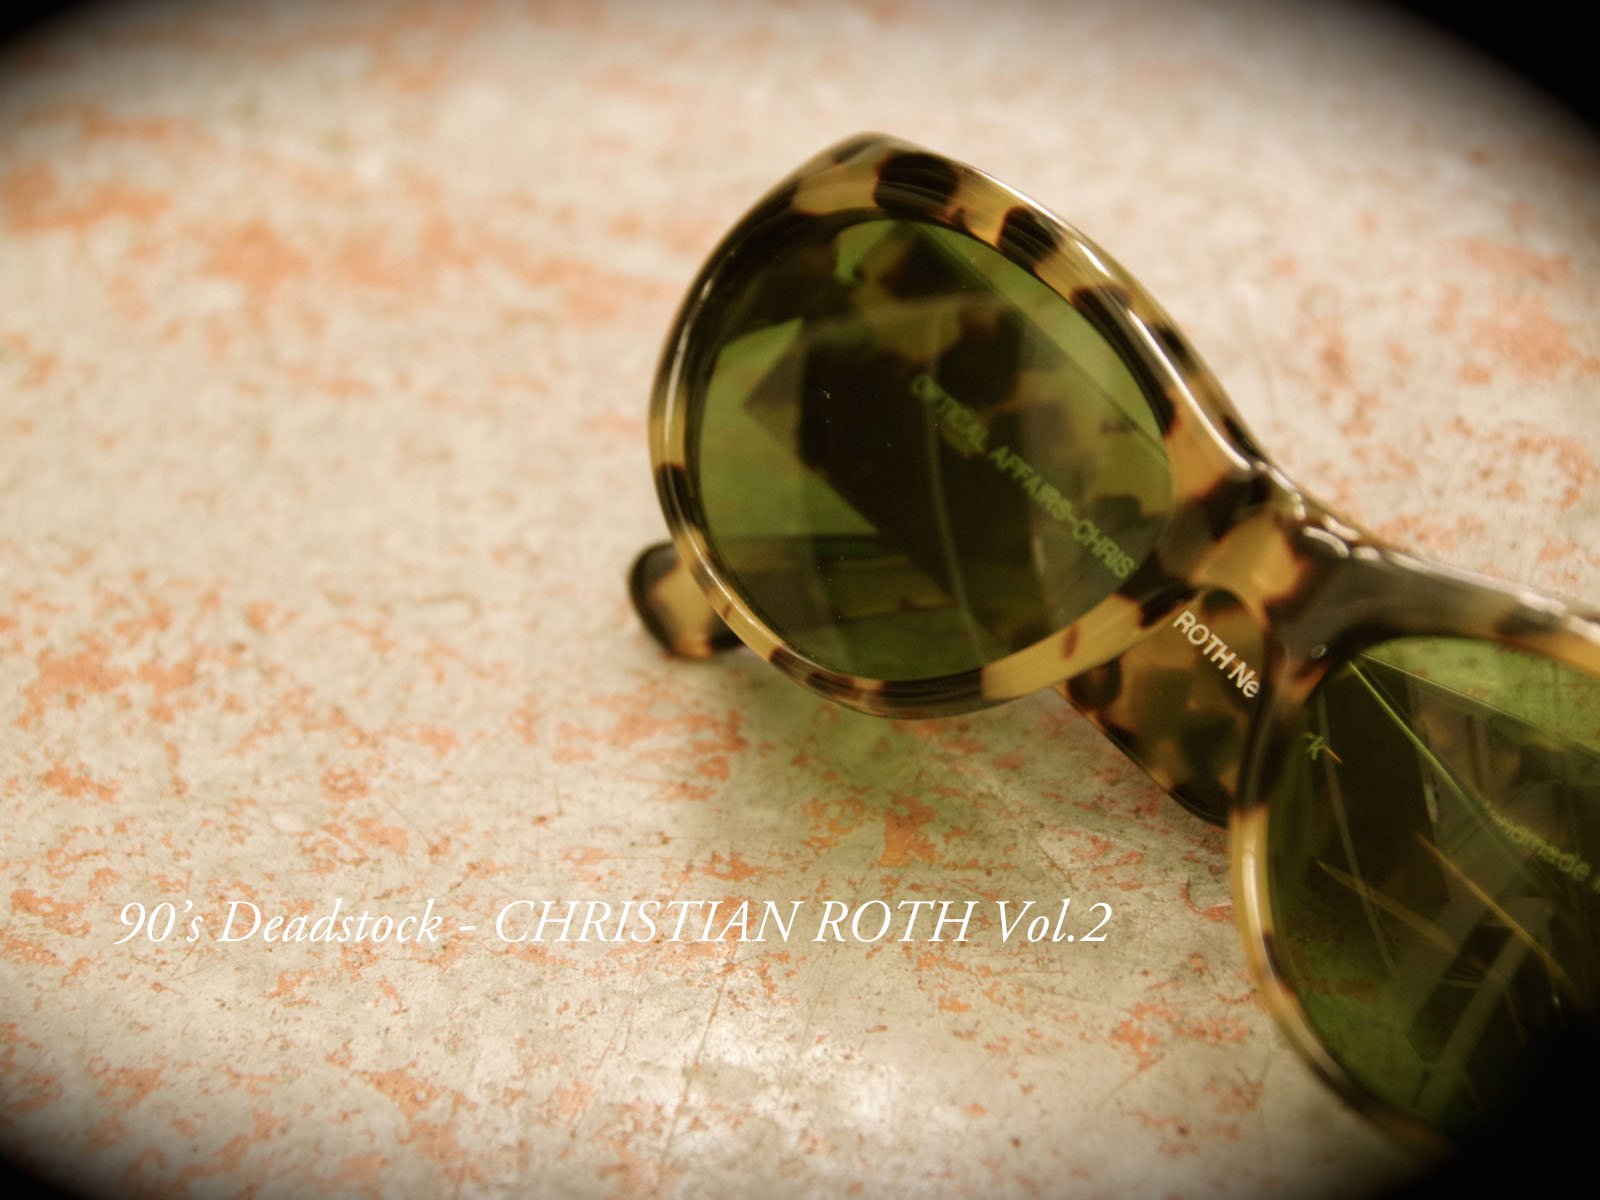 90's Deadstock – CHRISTIAN ROTH Vol.2